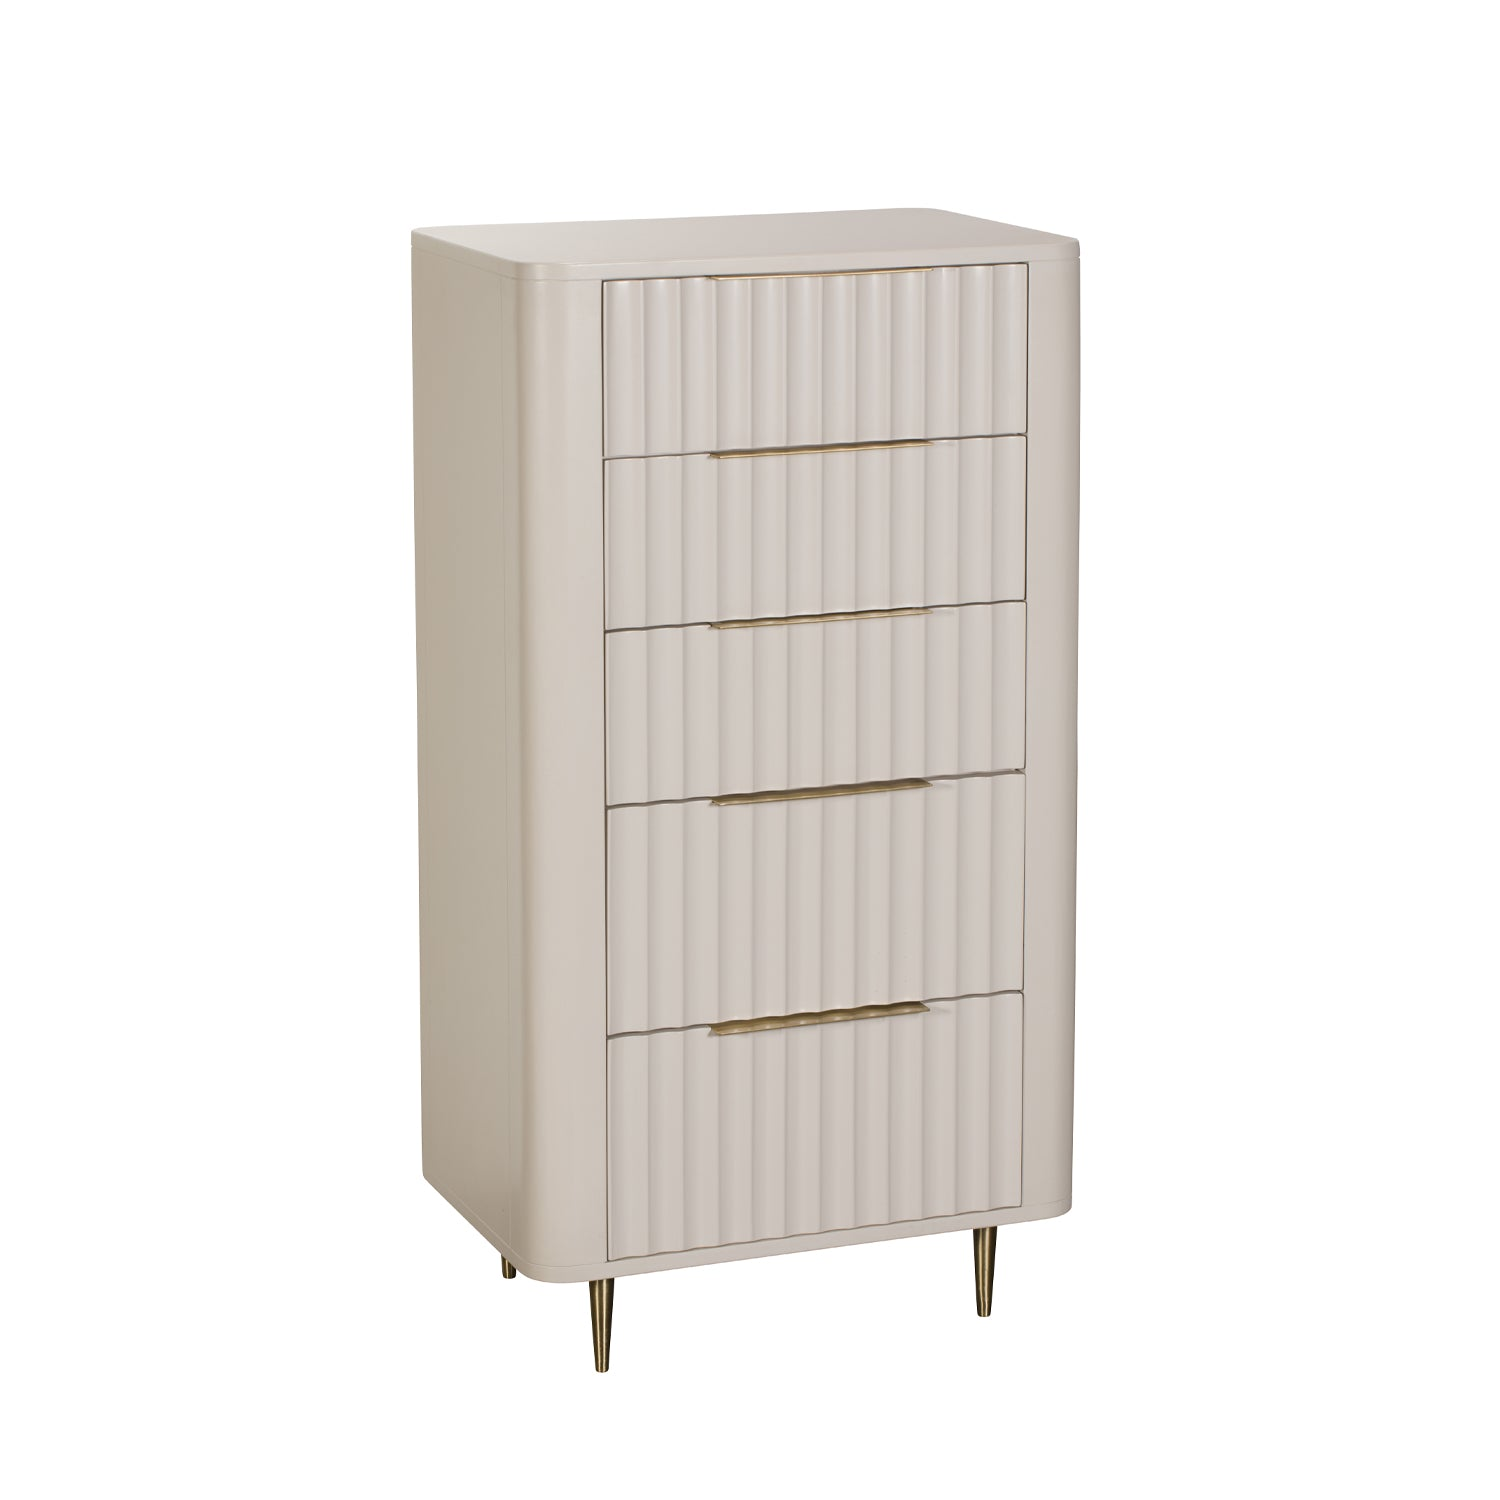 Coco Chest of Drawers - 5 Drawer Tall